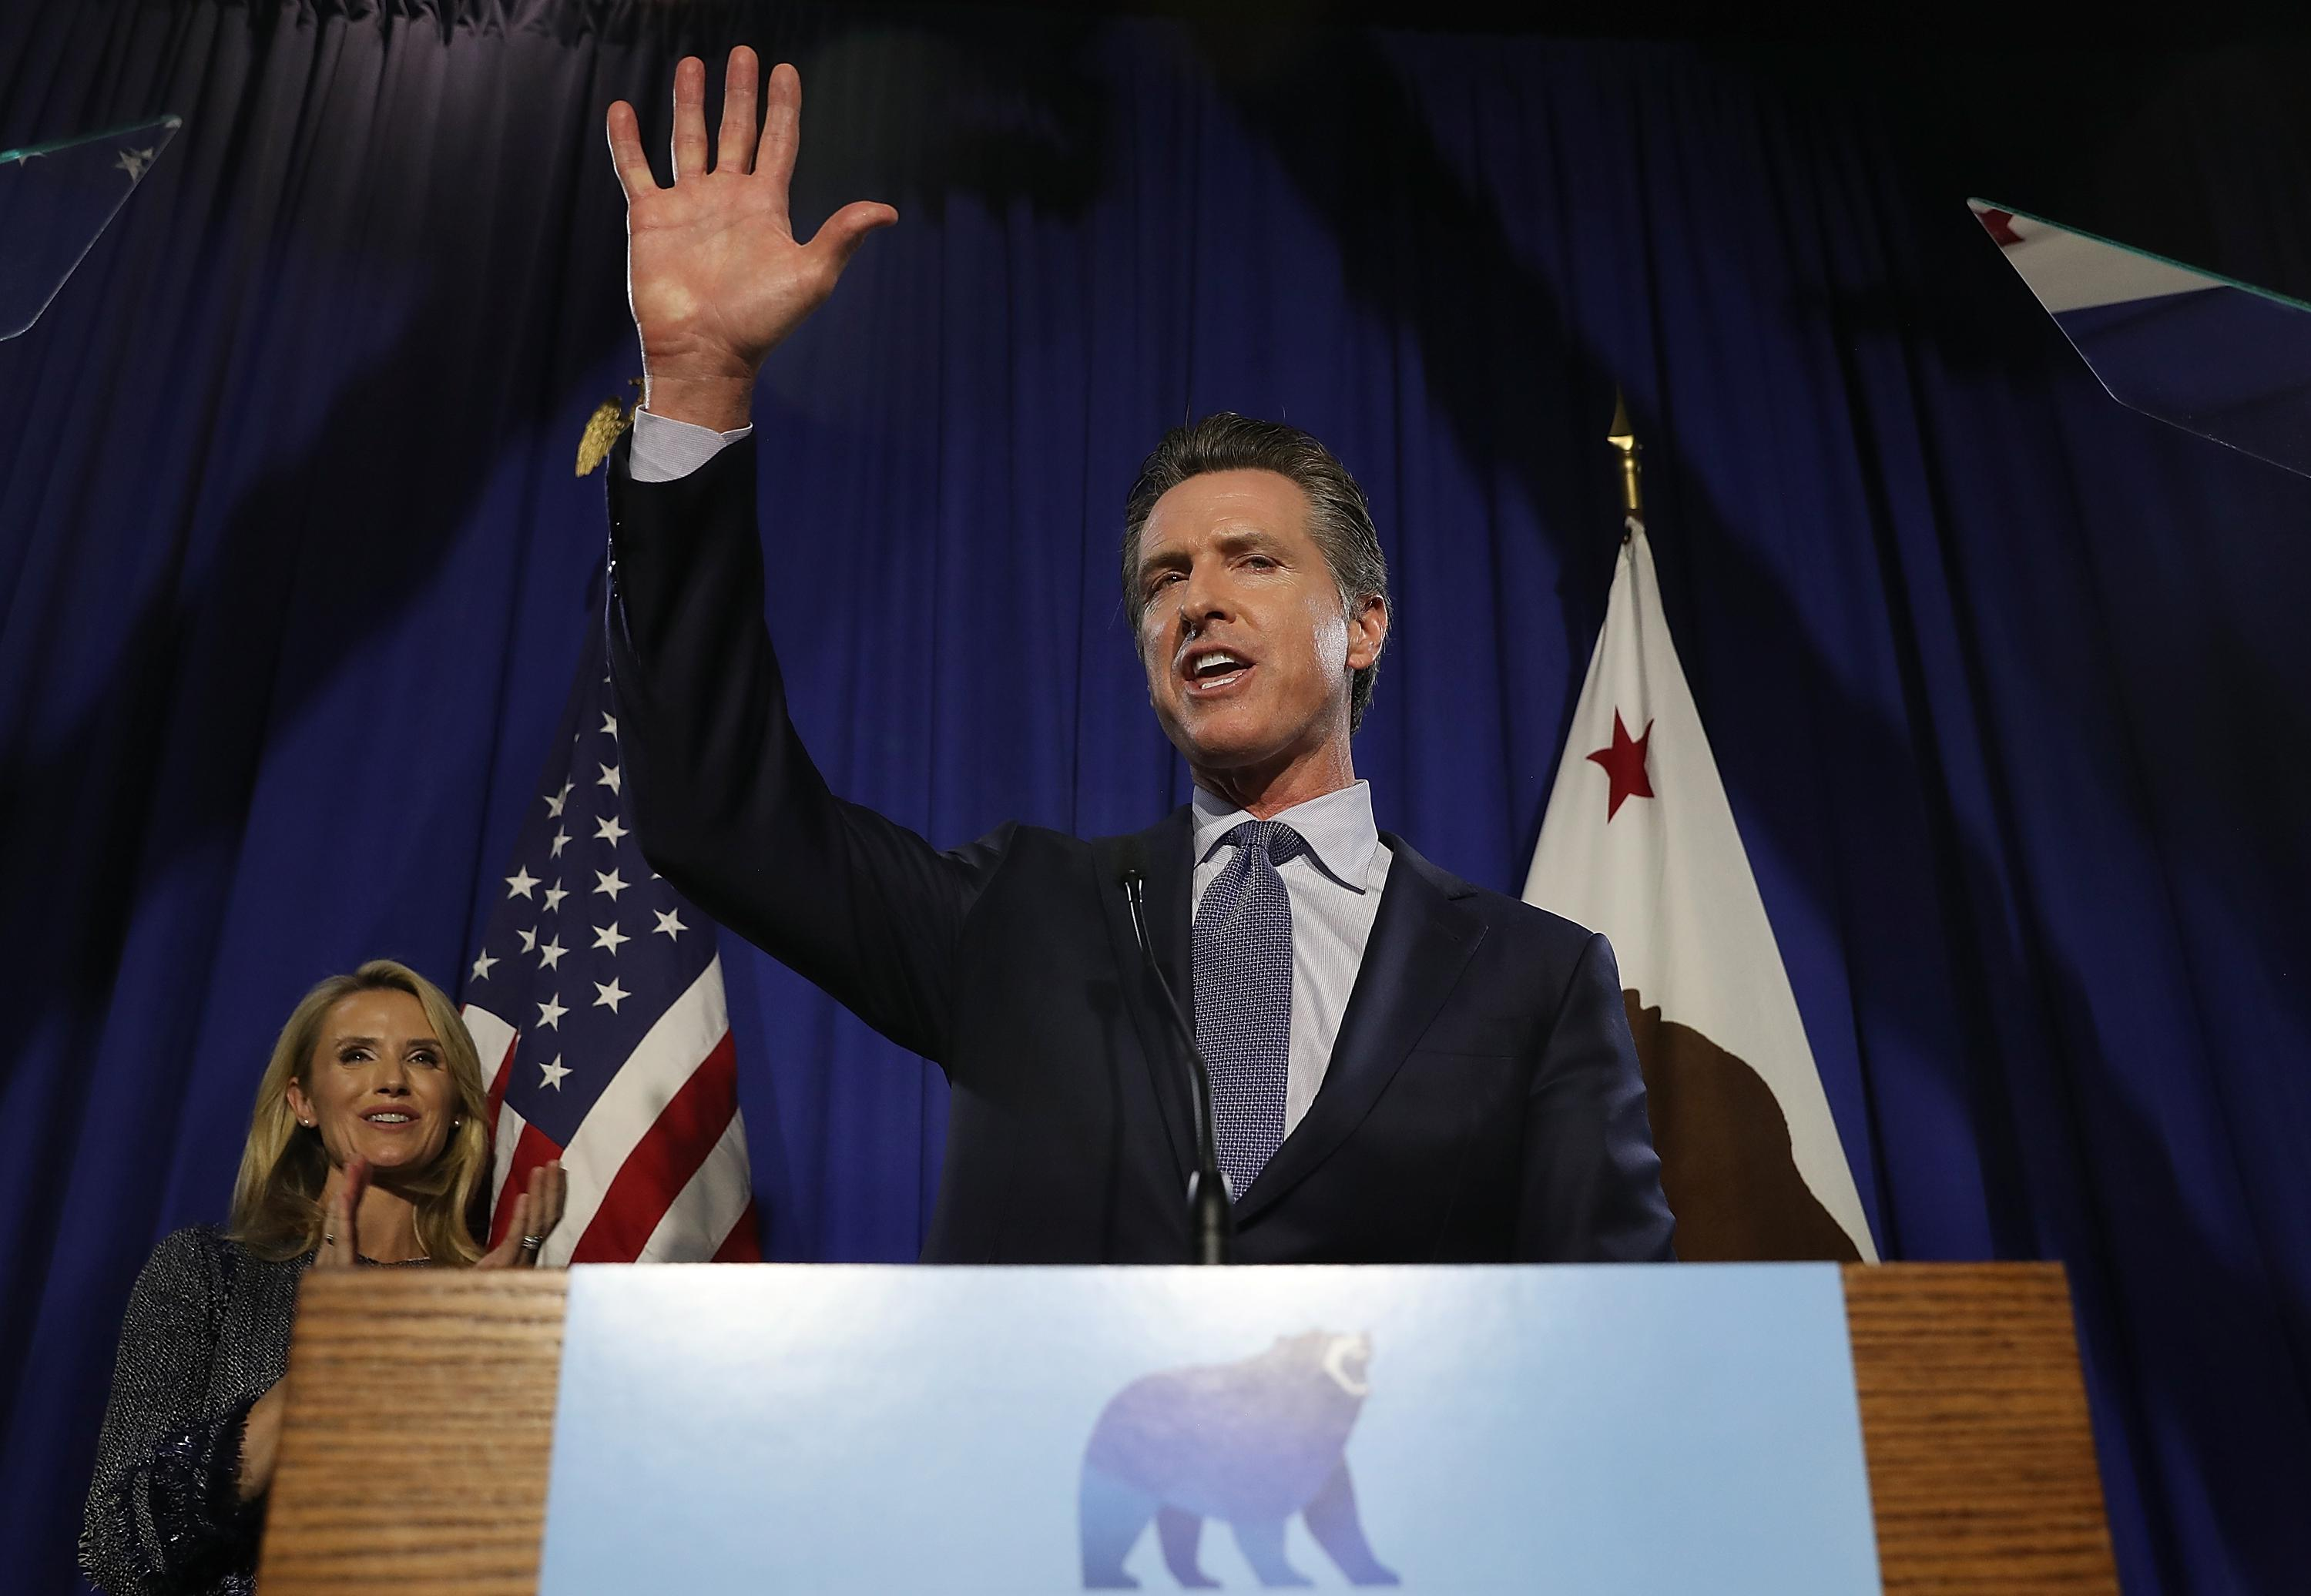 Gavin Newsom waves at the crowd.